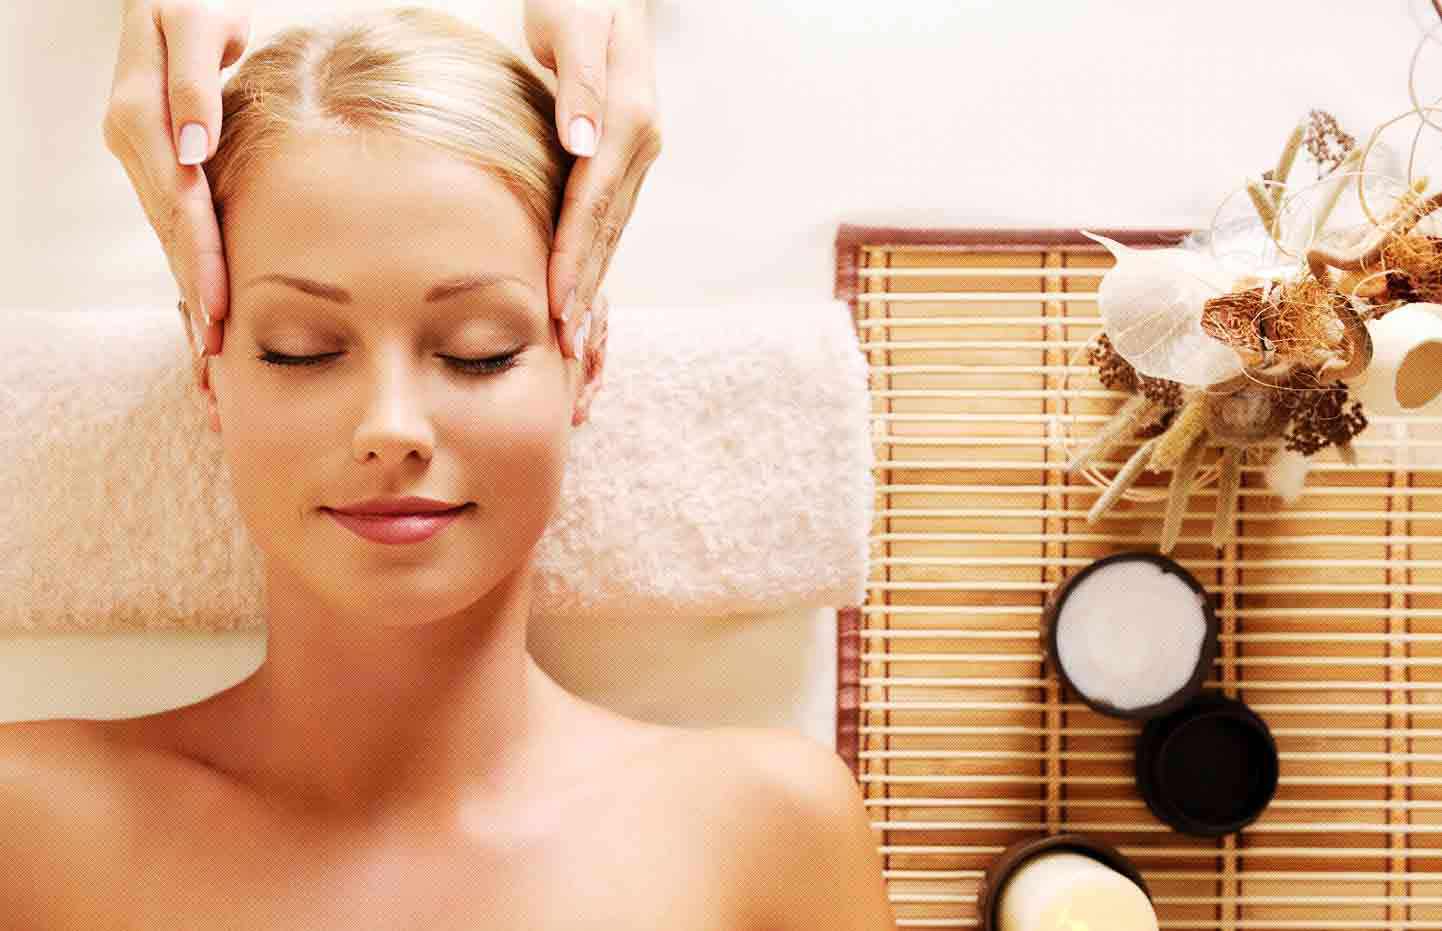 Skin Care and Pampering is best at Vogue Hair and Spa in Baner, Pune